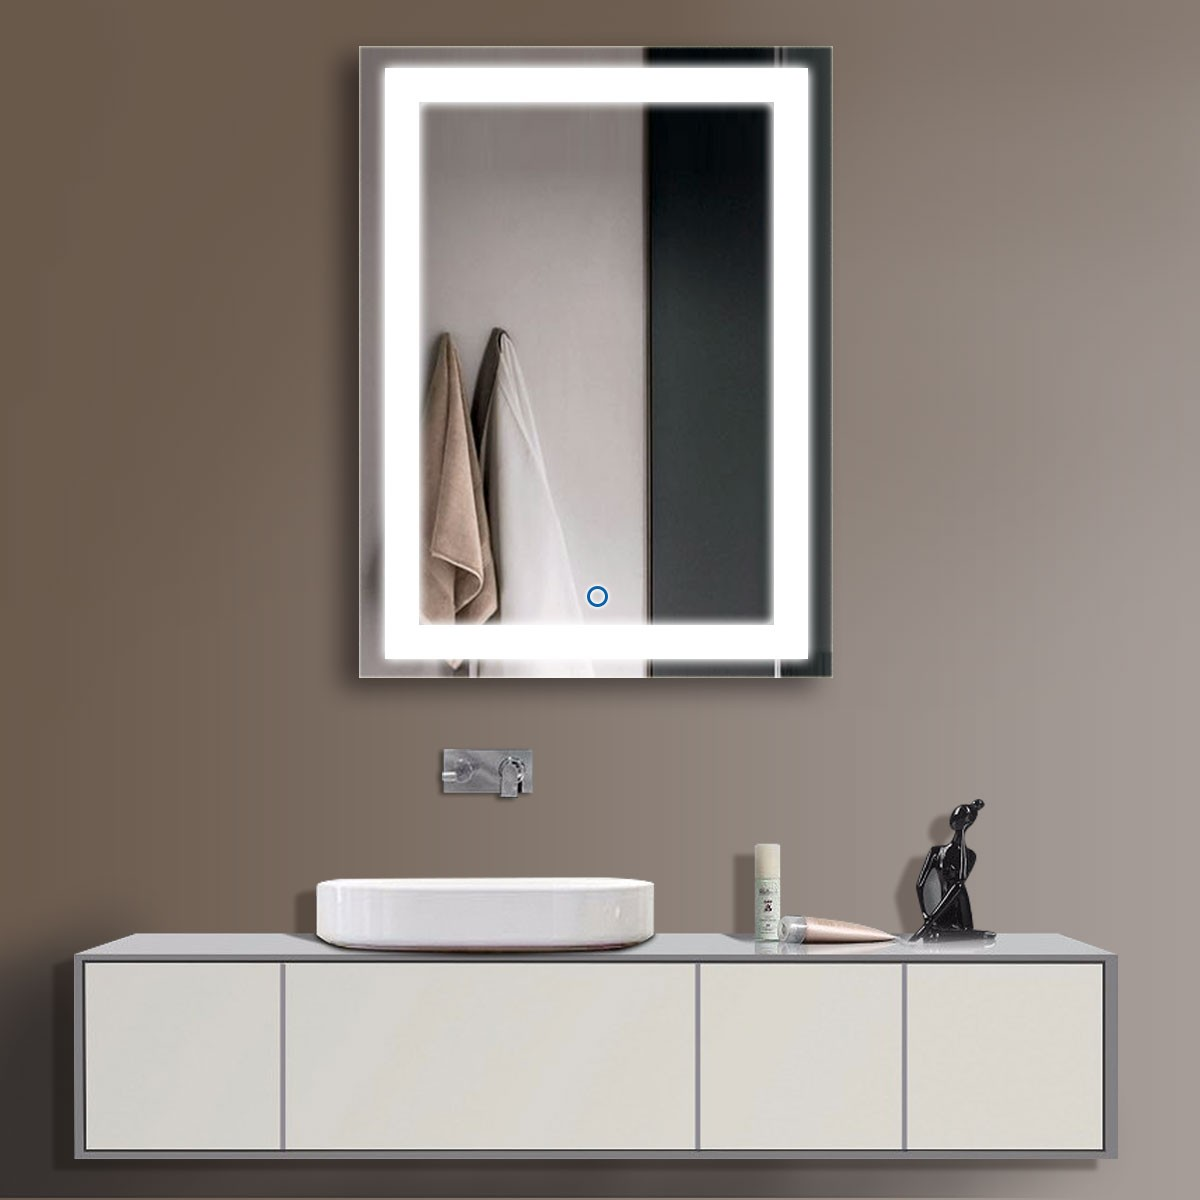 24 x 32 In Vertical LED Illuminated Bathroom Mirror Touch